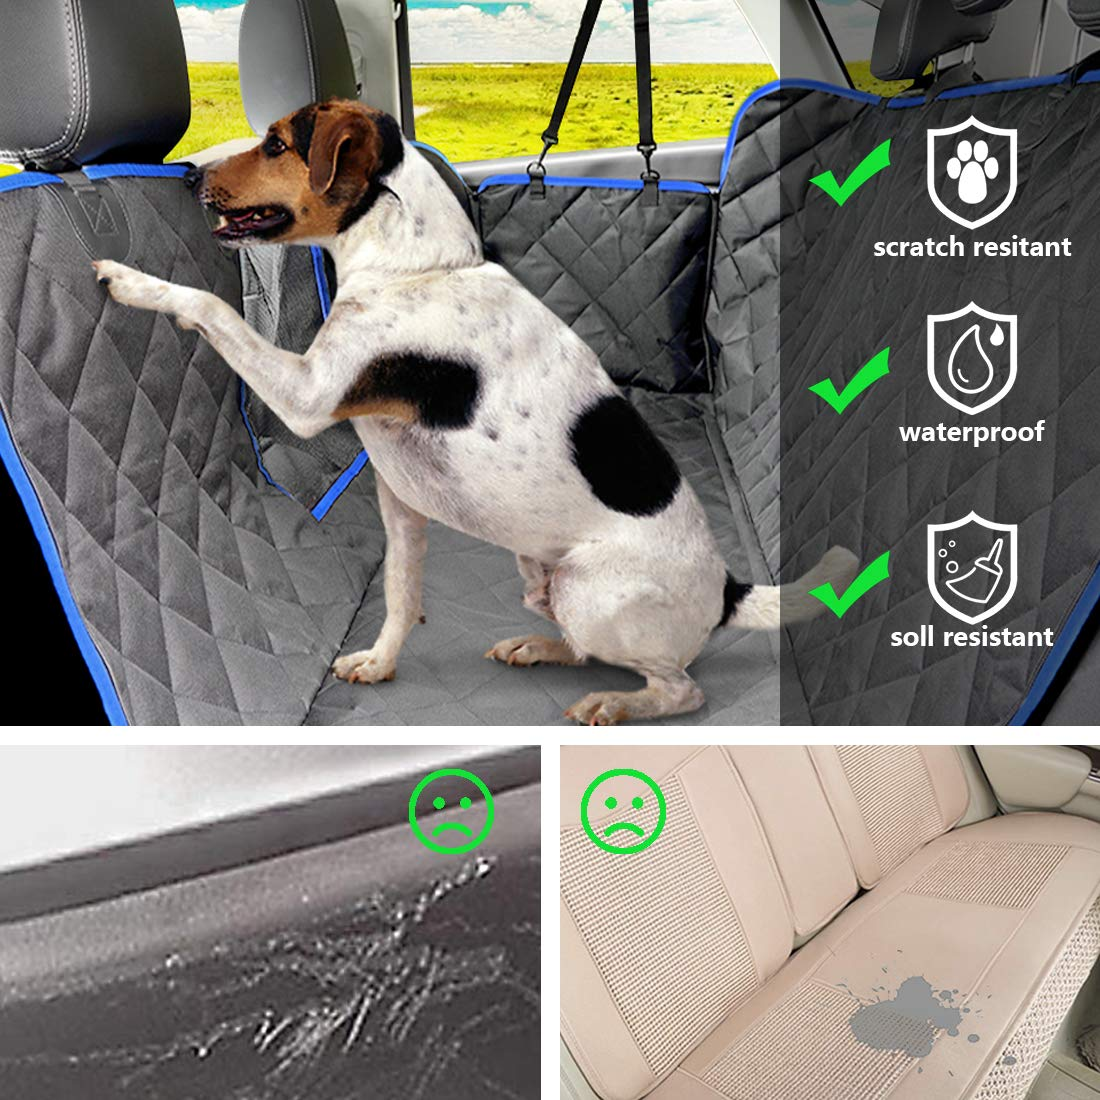 SUPSOO Dog Car Seat Cover Waterproof Durable Anti-Scratch Nonslip Back Seat Pet Protection Dog Travel Hammock with Mesh Window and Side Flaps for Cars/Trucks/SUV by SUPSOO (Image #3)